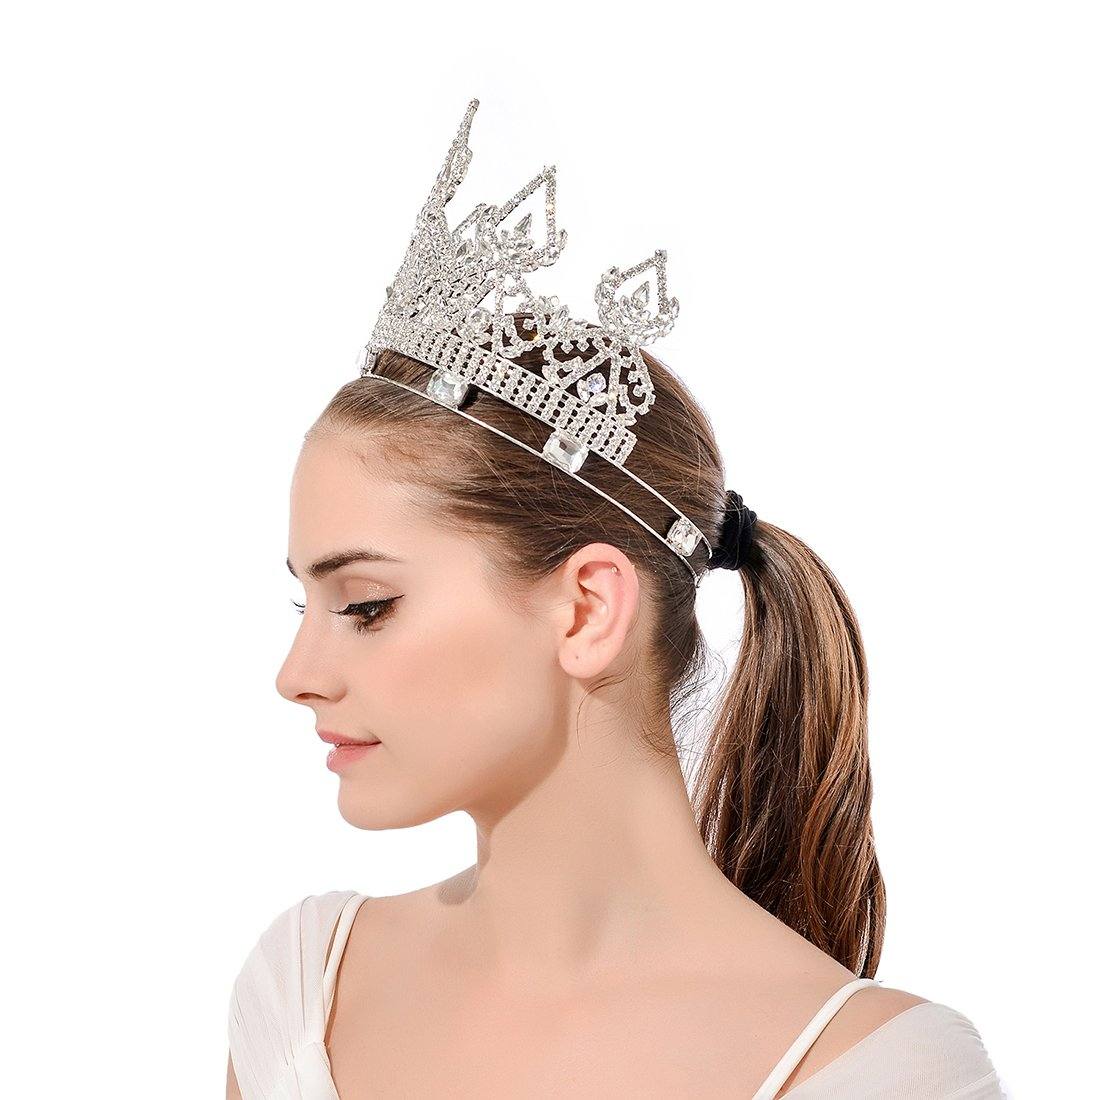 DcZeRong Women Crowns Queen Crowns For Women Prom Pageant Party Rhinestone Crystal Full Crowns by DcZeRong (Image #5)